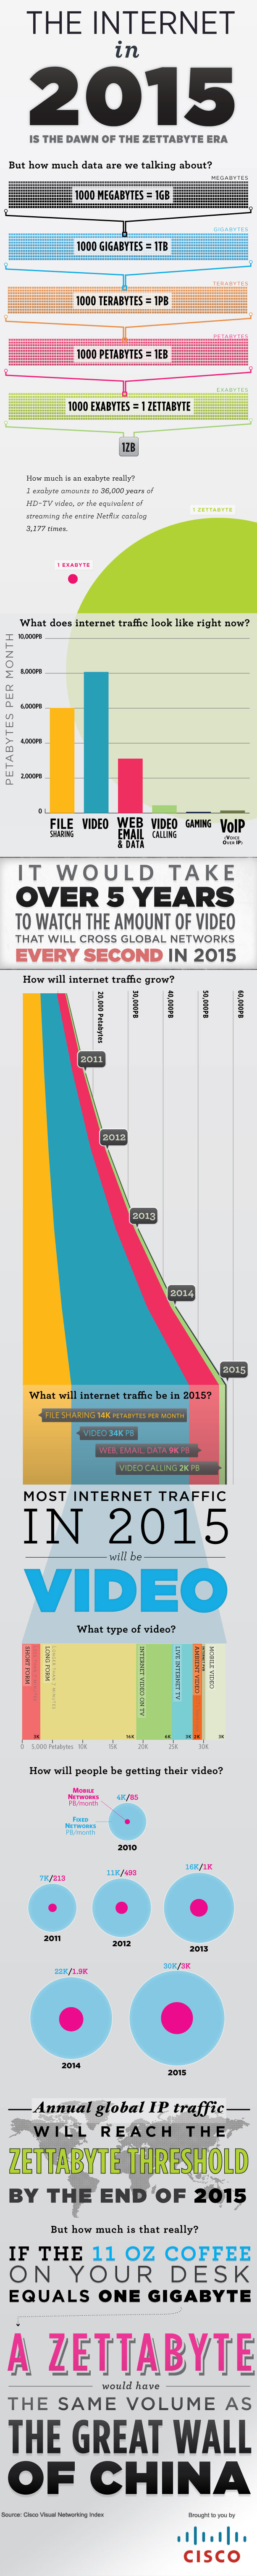 The Internet and it's Usage to be Expected in 2015  internet,data,downloading,uploading